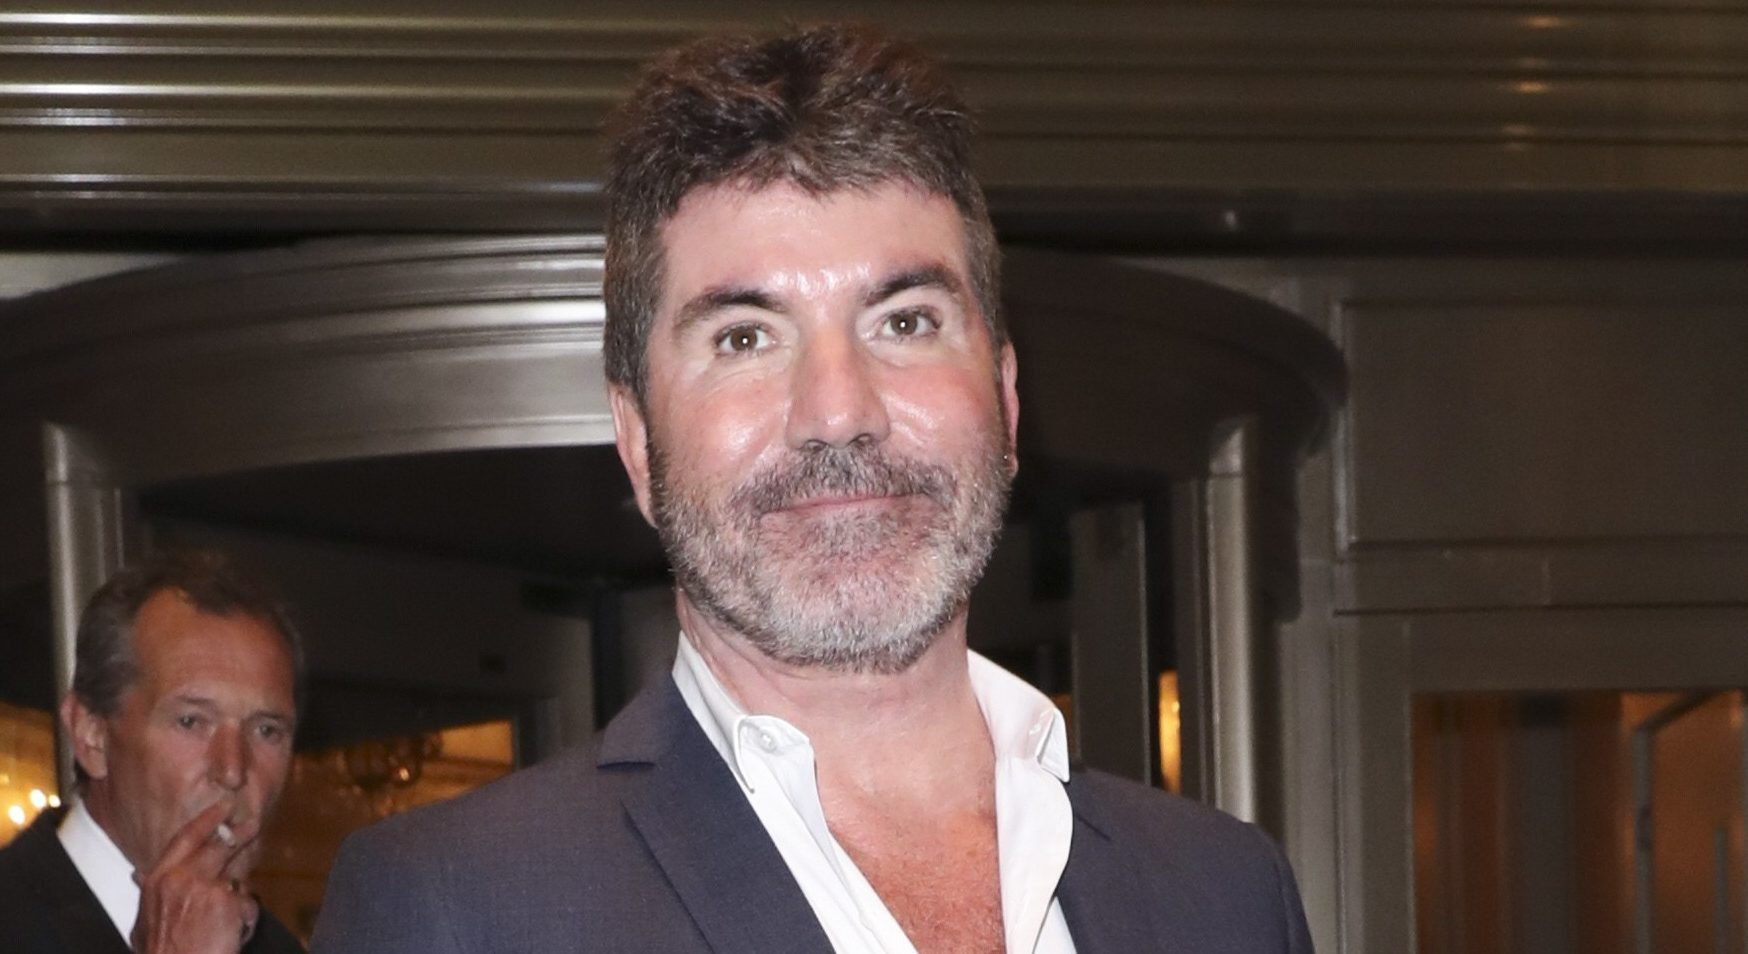 Simon Cowell 'goes head-to-head with Strictly bosses'